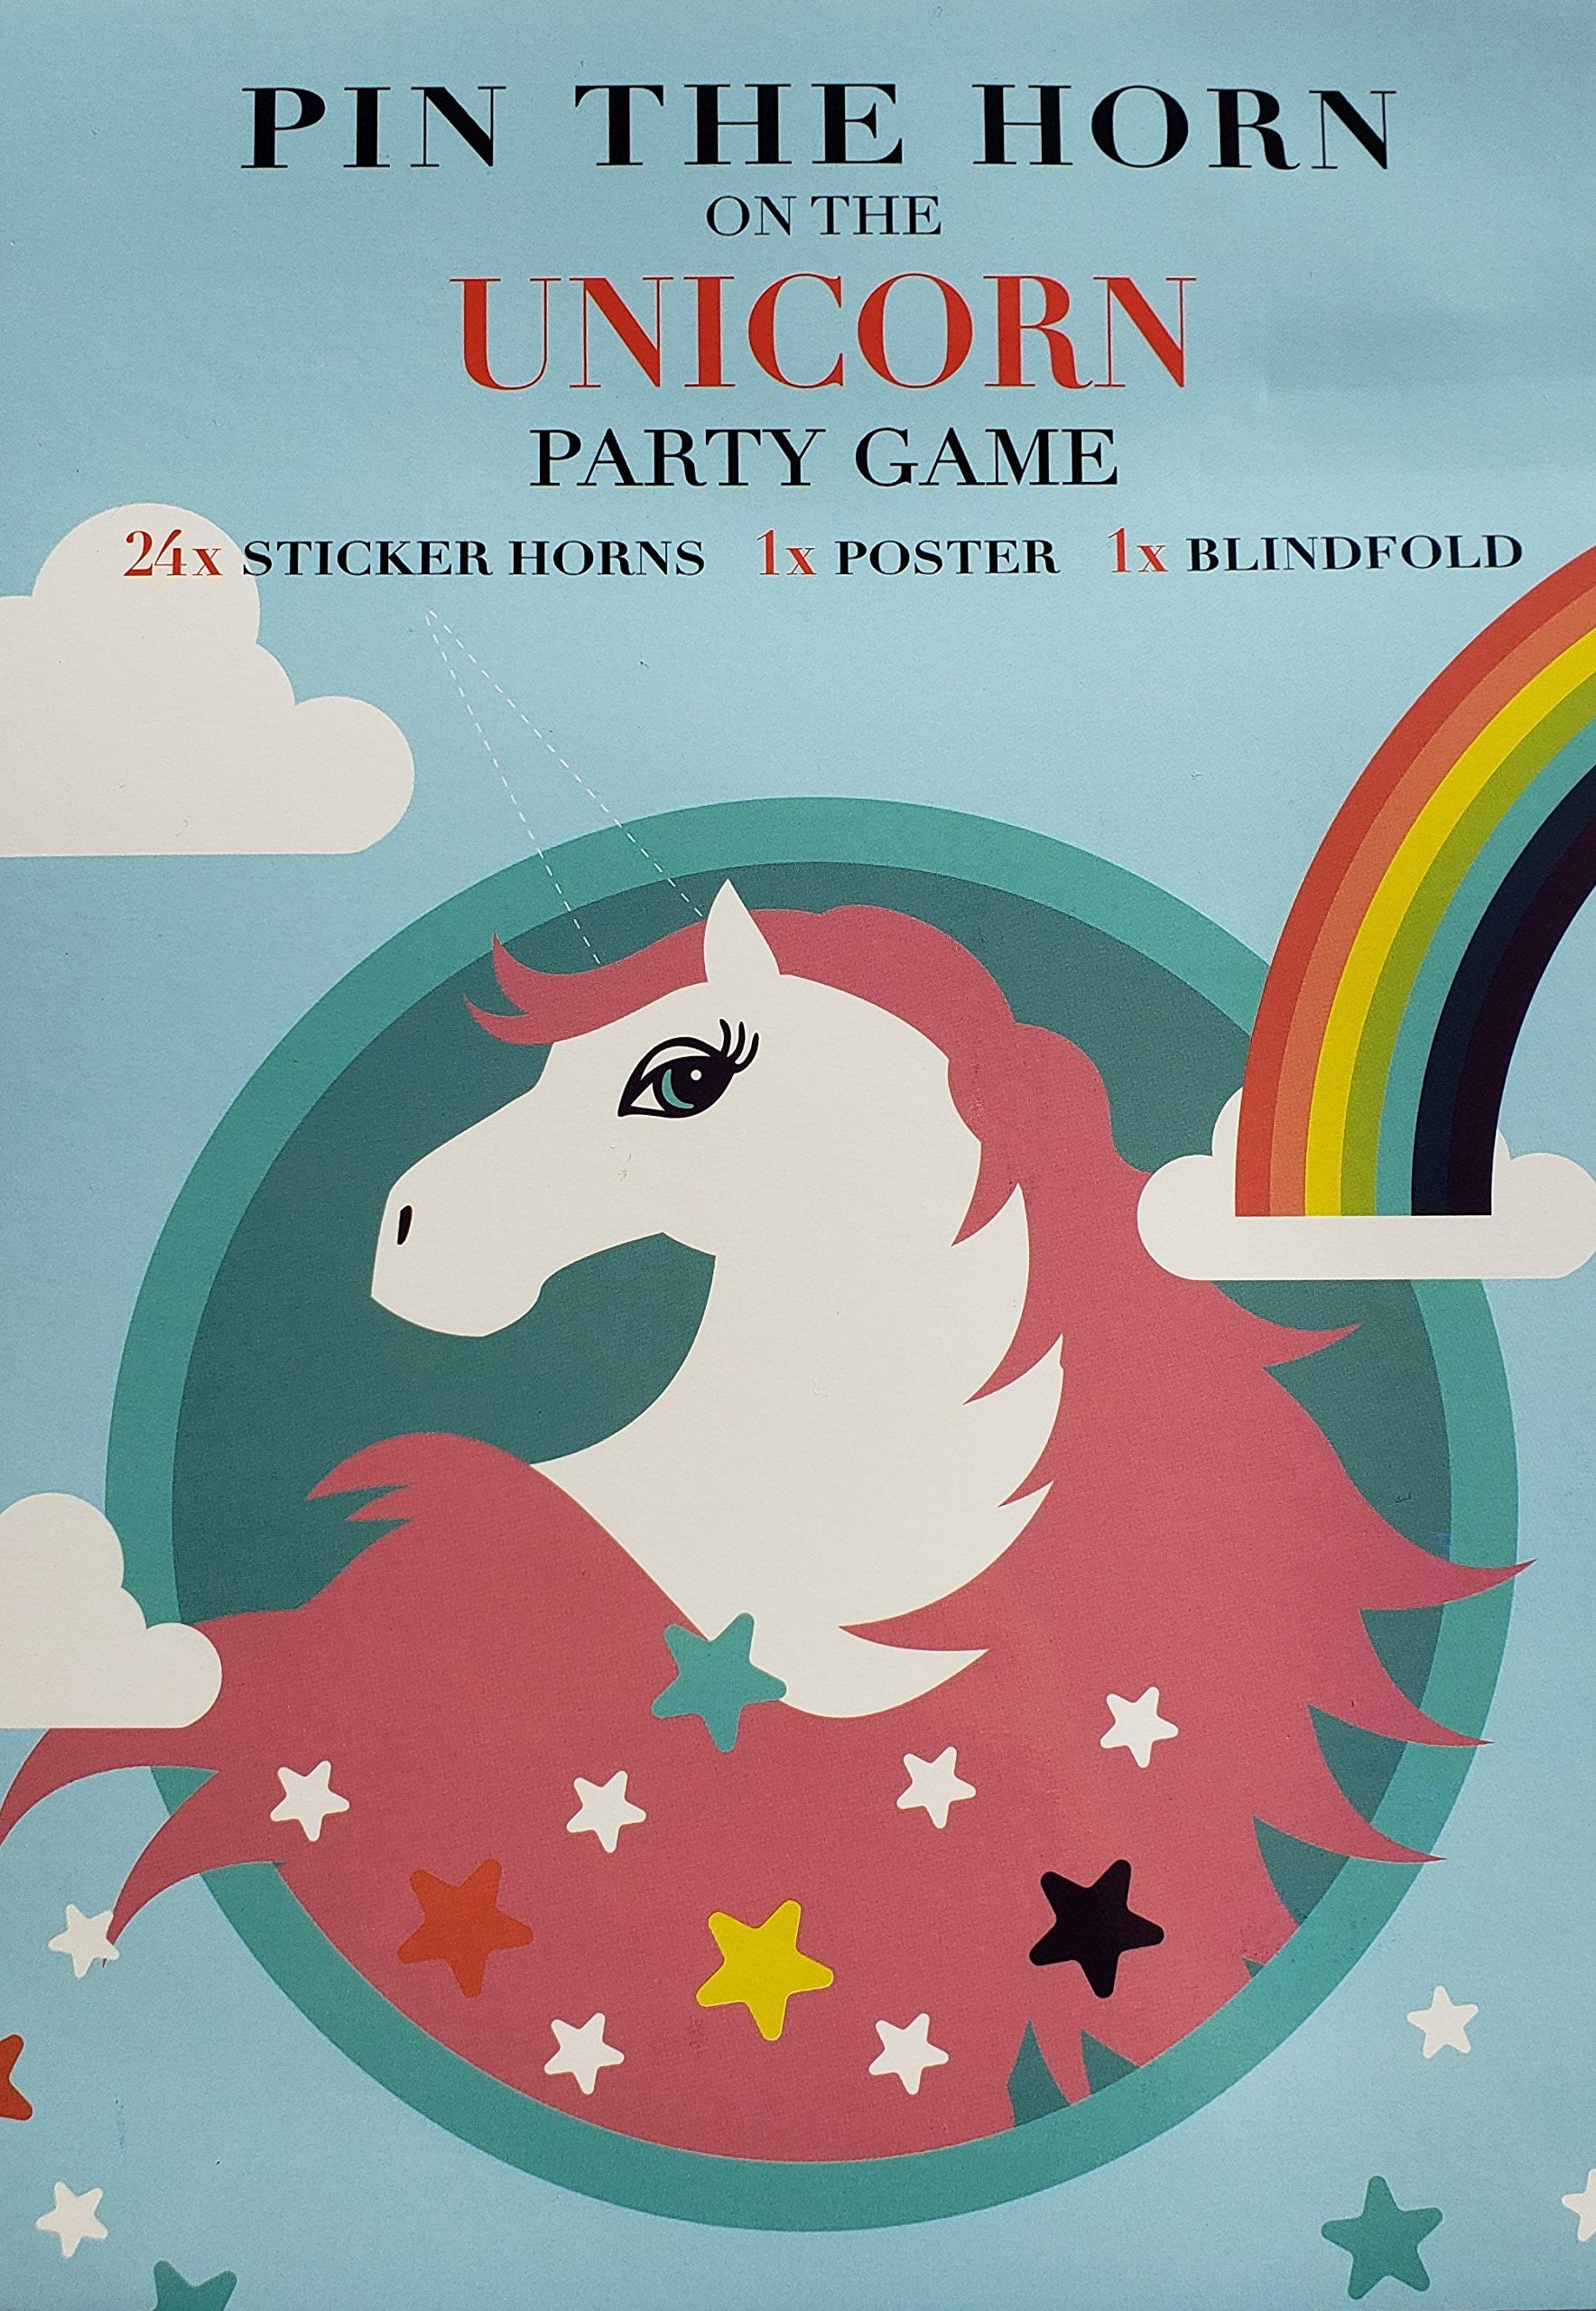 24 Reusable Sticker Horns,Eye Mask--Perfect Gift for Baby Shower,Birthday Party. Unicorn Party Supplies-Unicorn Funny Game,Pin The Horn on The Unicorn Birthday Party Favor Games for Kids;Include a Large Adorable Poster